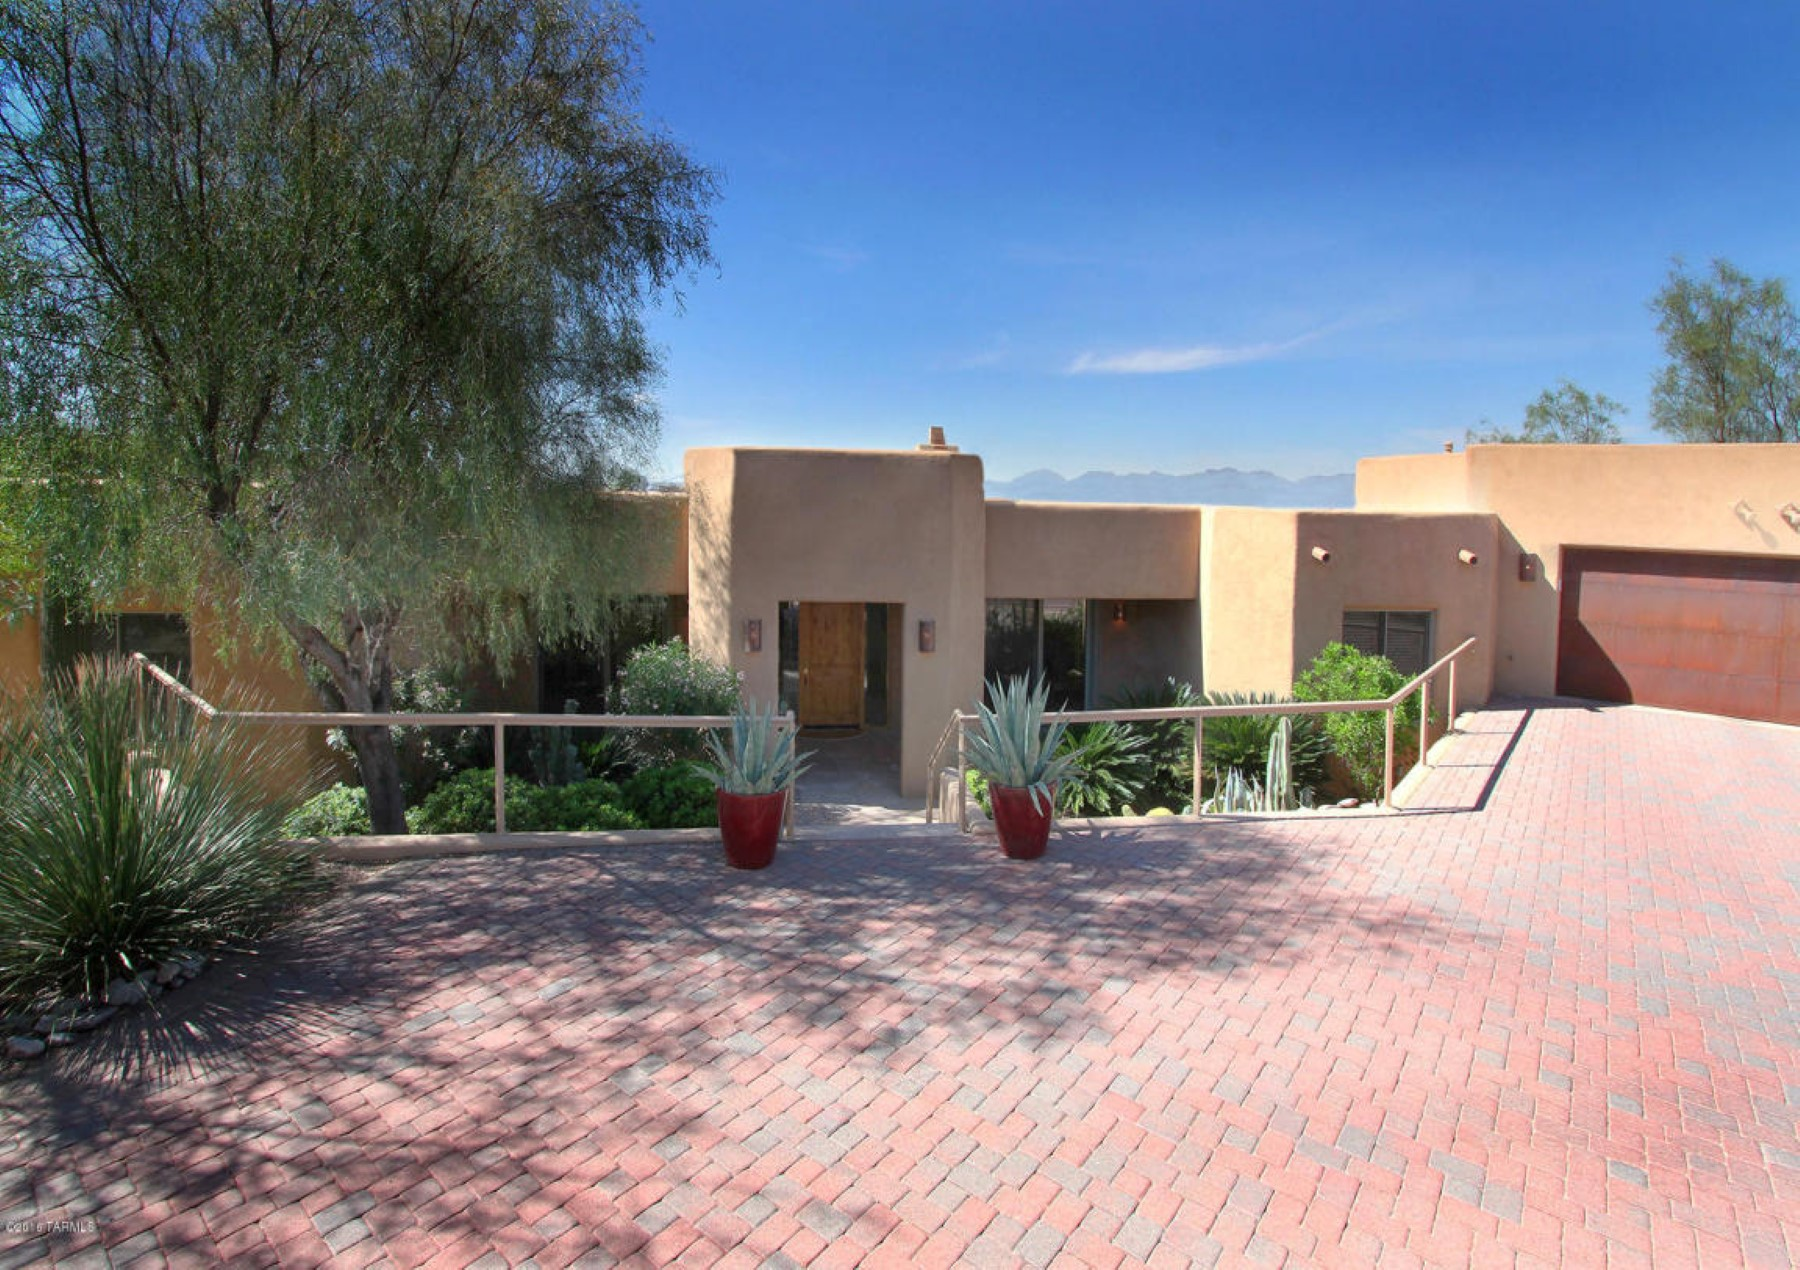 Villa per Vendita alle ore Fully furnished contemporary home 1608 E Desert Garden Drive Tucson, Arizona, 85718 Stati Uniti